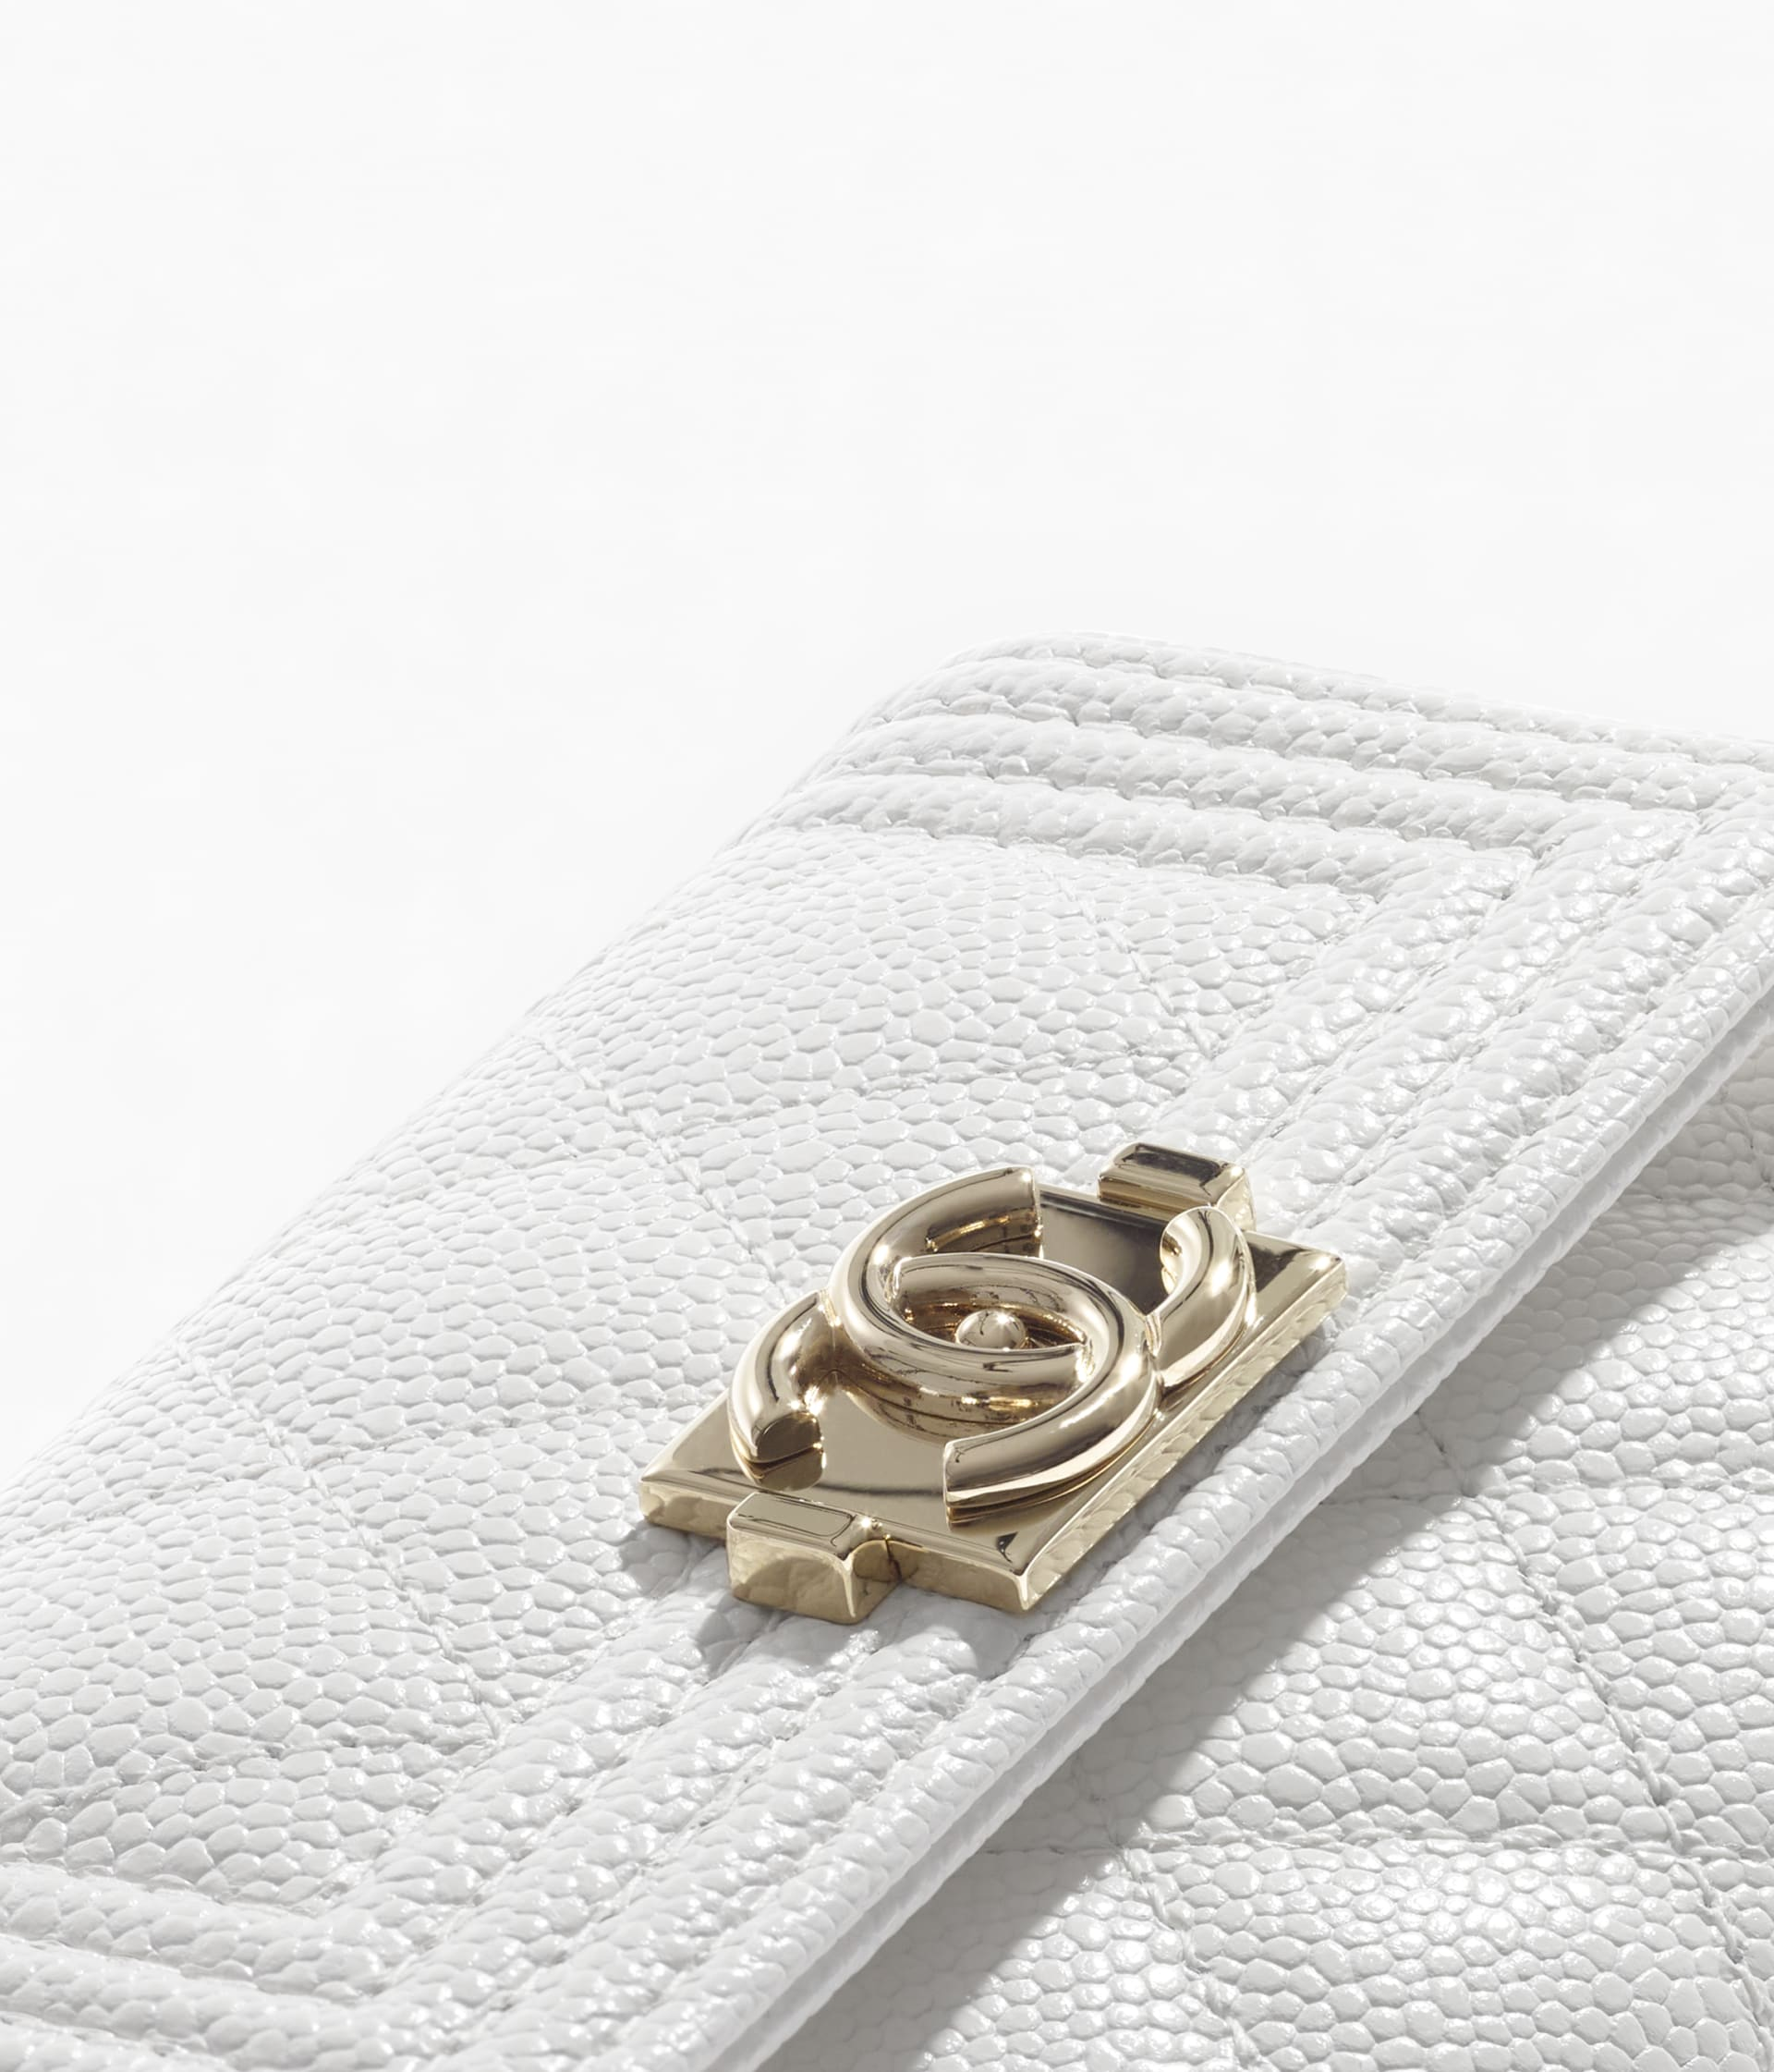 image 4 - BOY CHANEL Flap Card Holder - Grained Calfskin & Gold-Tone Metal - White